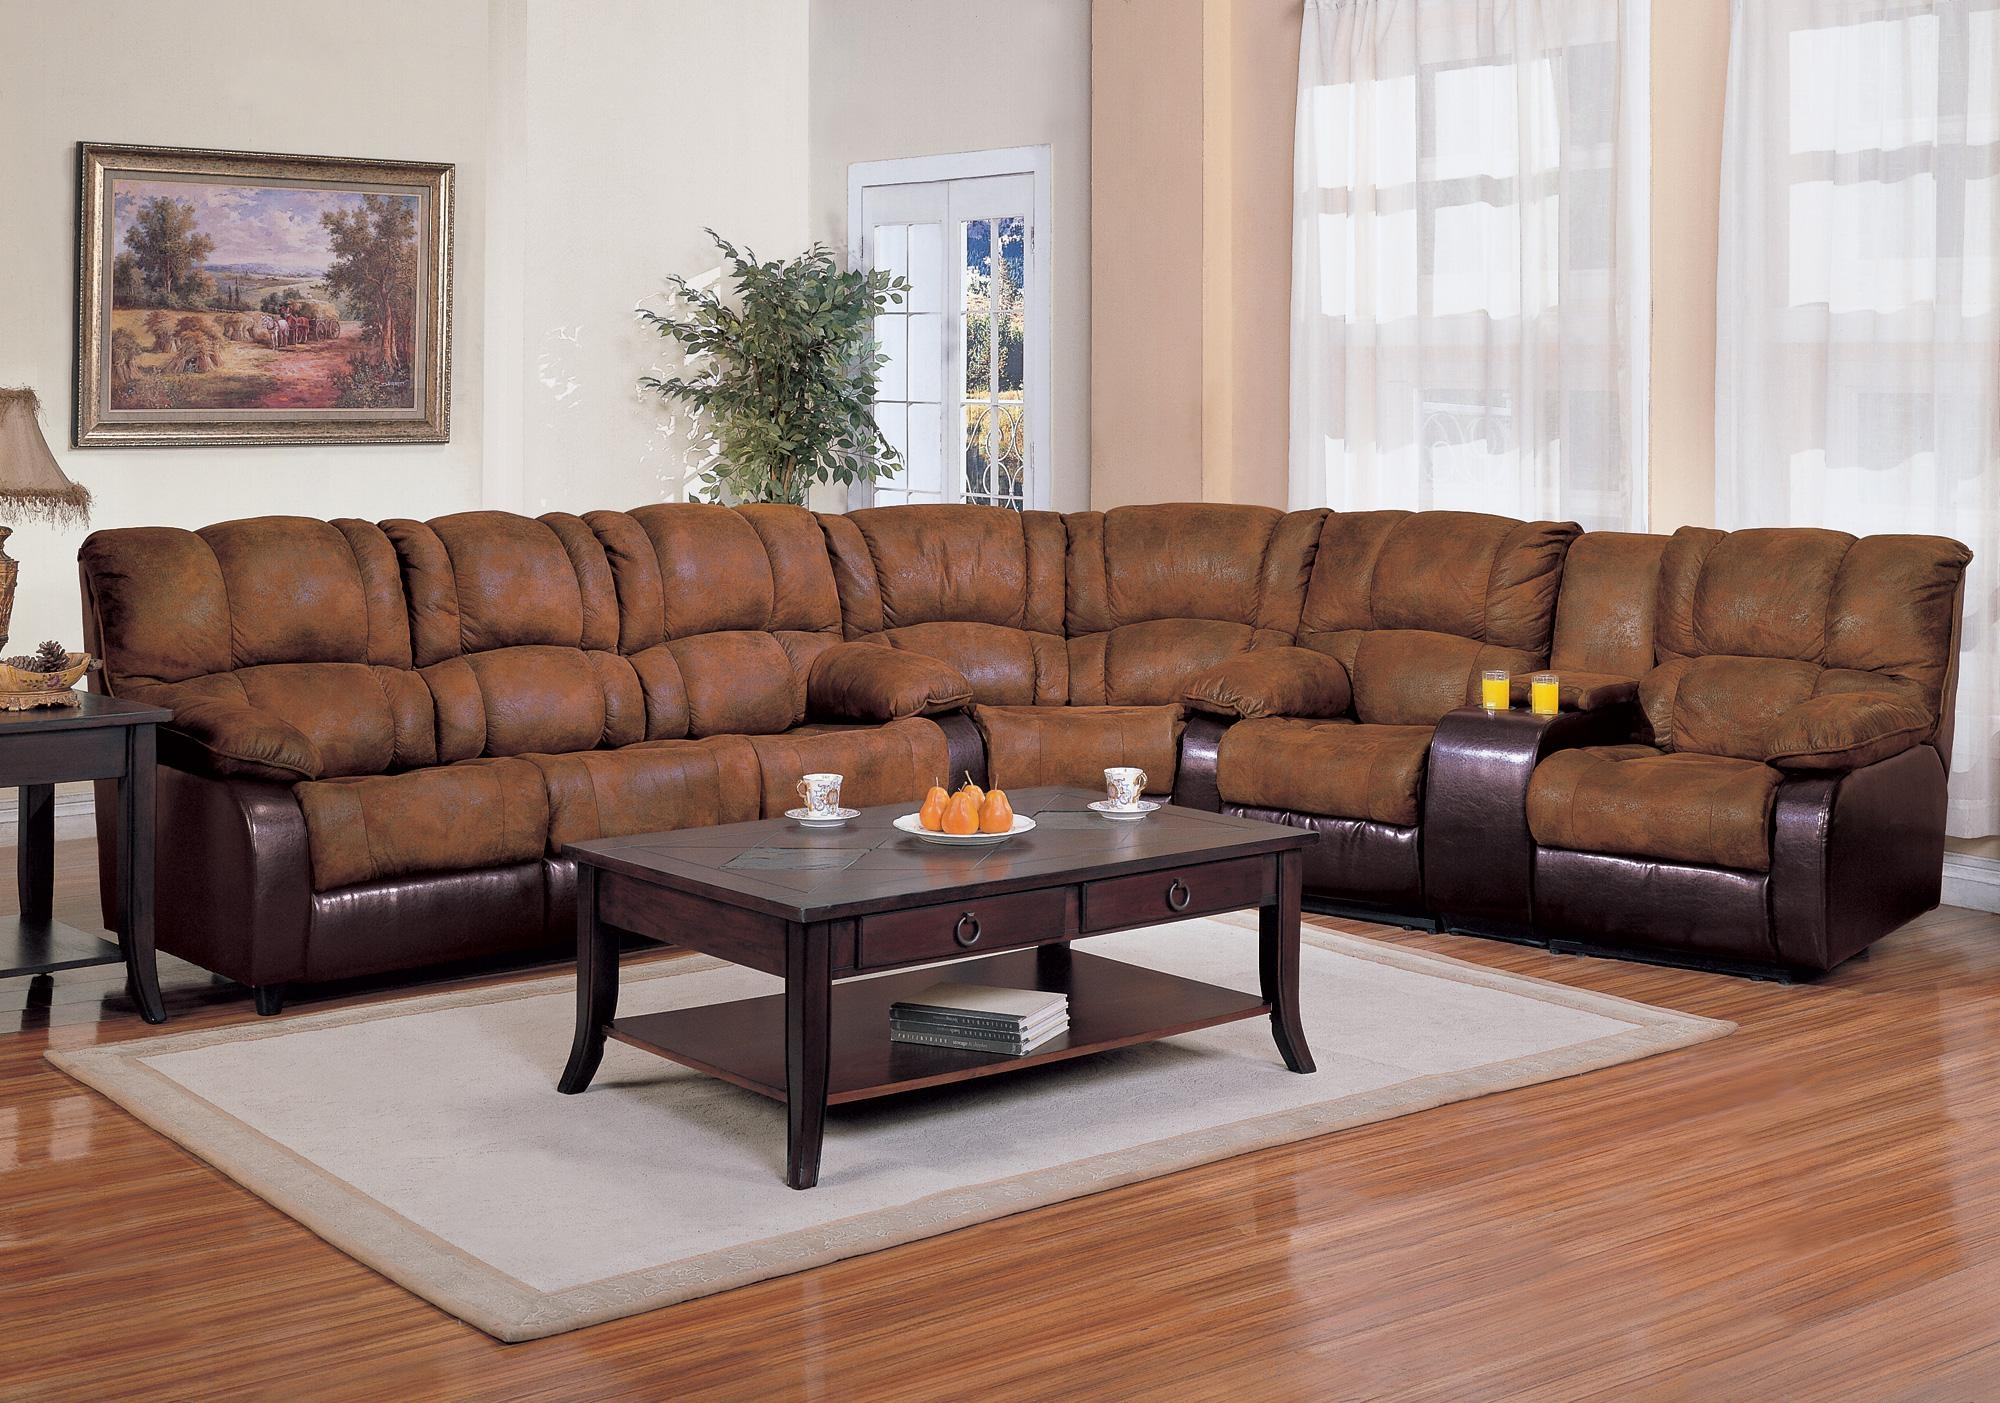 ▻ Sofa Bed : Welfare Convertible Sectional Sofa Bed With Sleeper Recliner Sectional (Image 1 of 20)